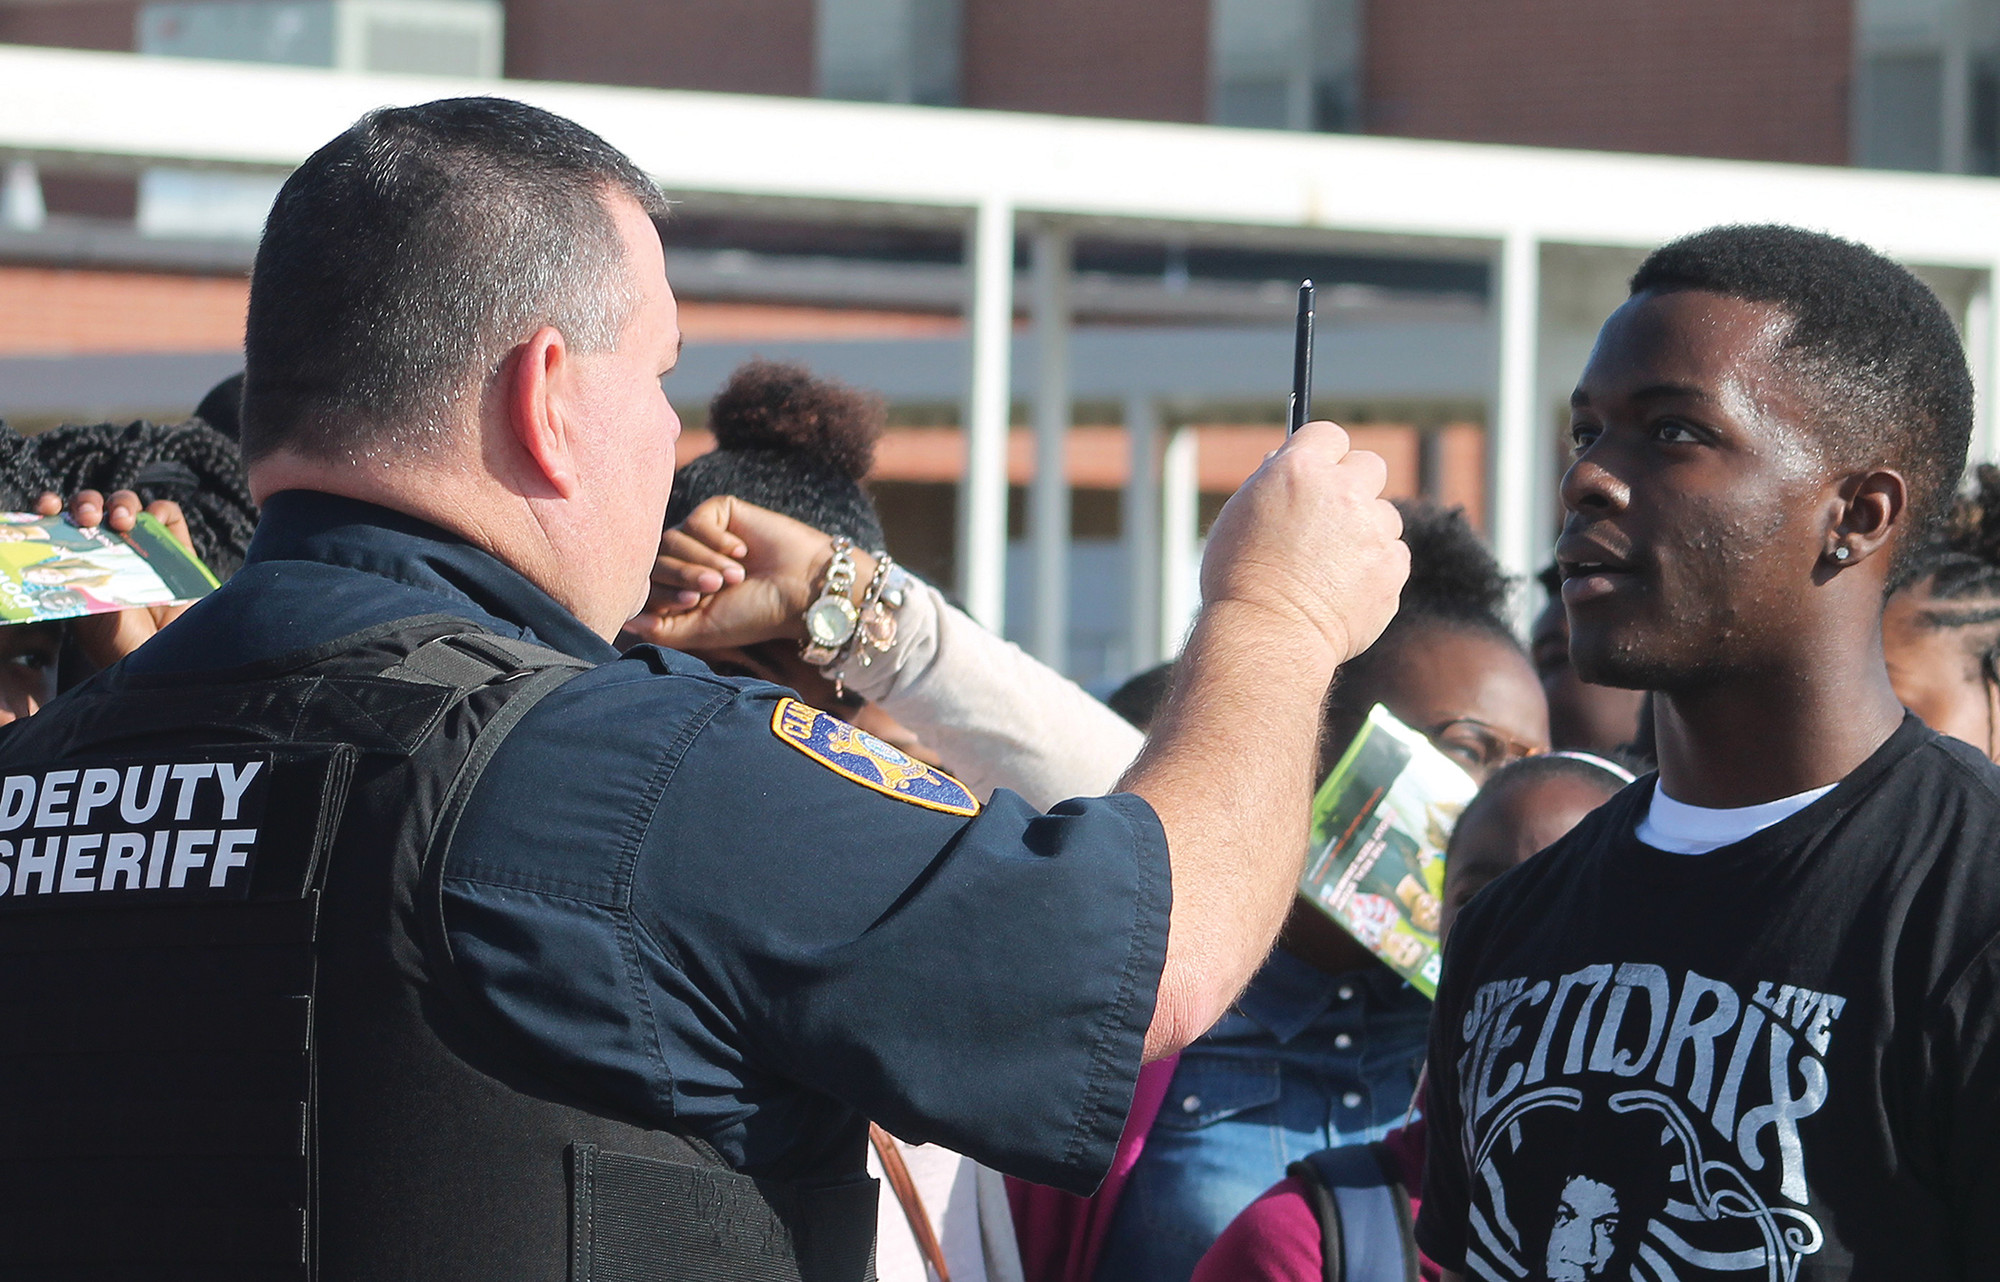 Sgt. David Floyd who heads up the Traffic Division at the Clarendon County Sheriff's Office administers a part of his division's field sobriety test to a Scott's Branch High School student as part of the school's Prom Promise program that was held Wednesday morning.